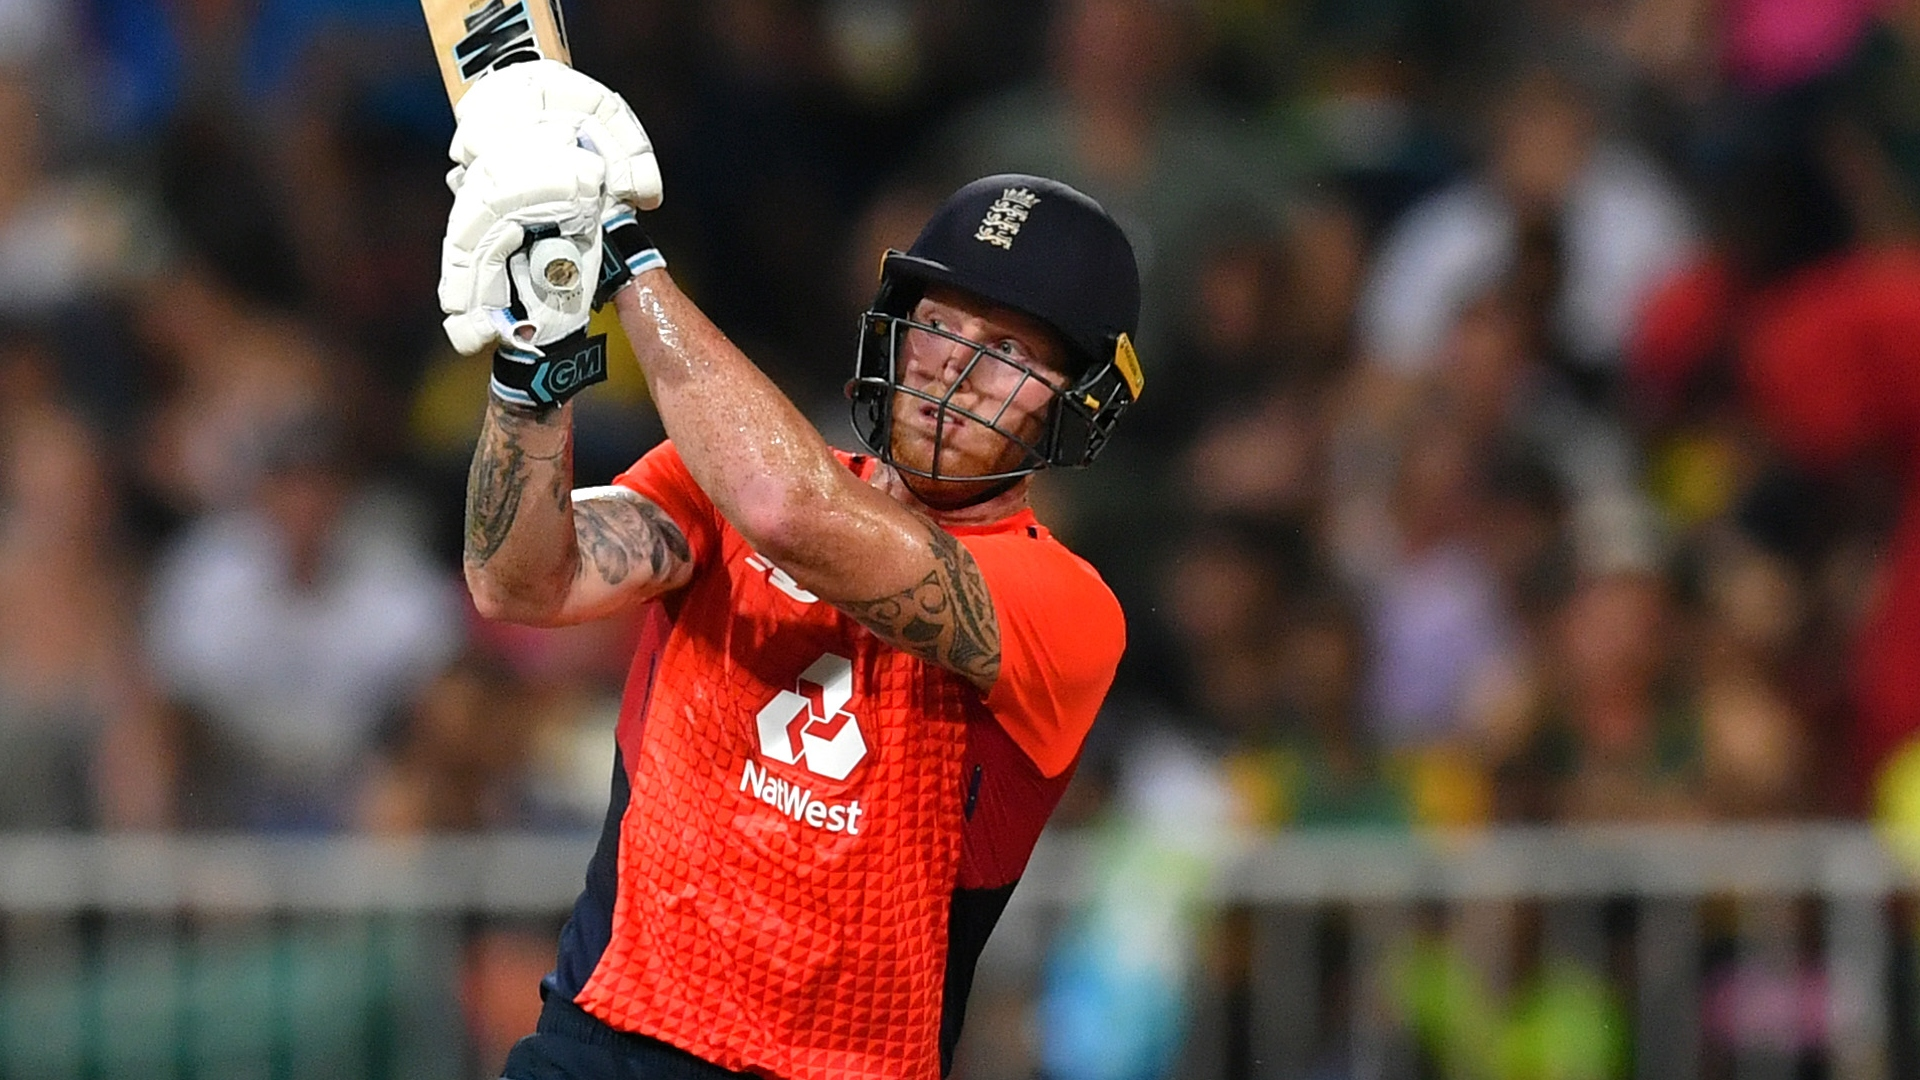 Stokes would make a great England captain, says Flintoff